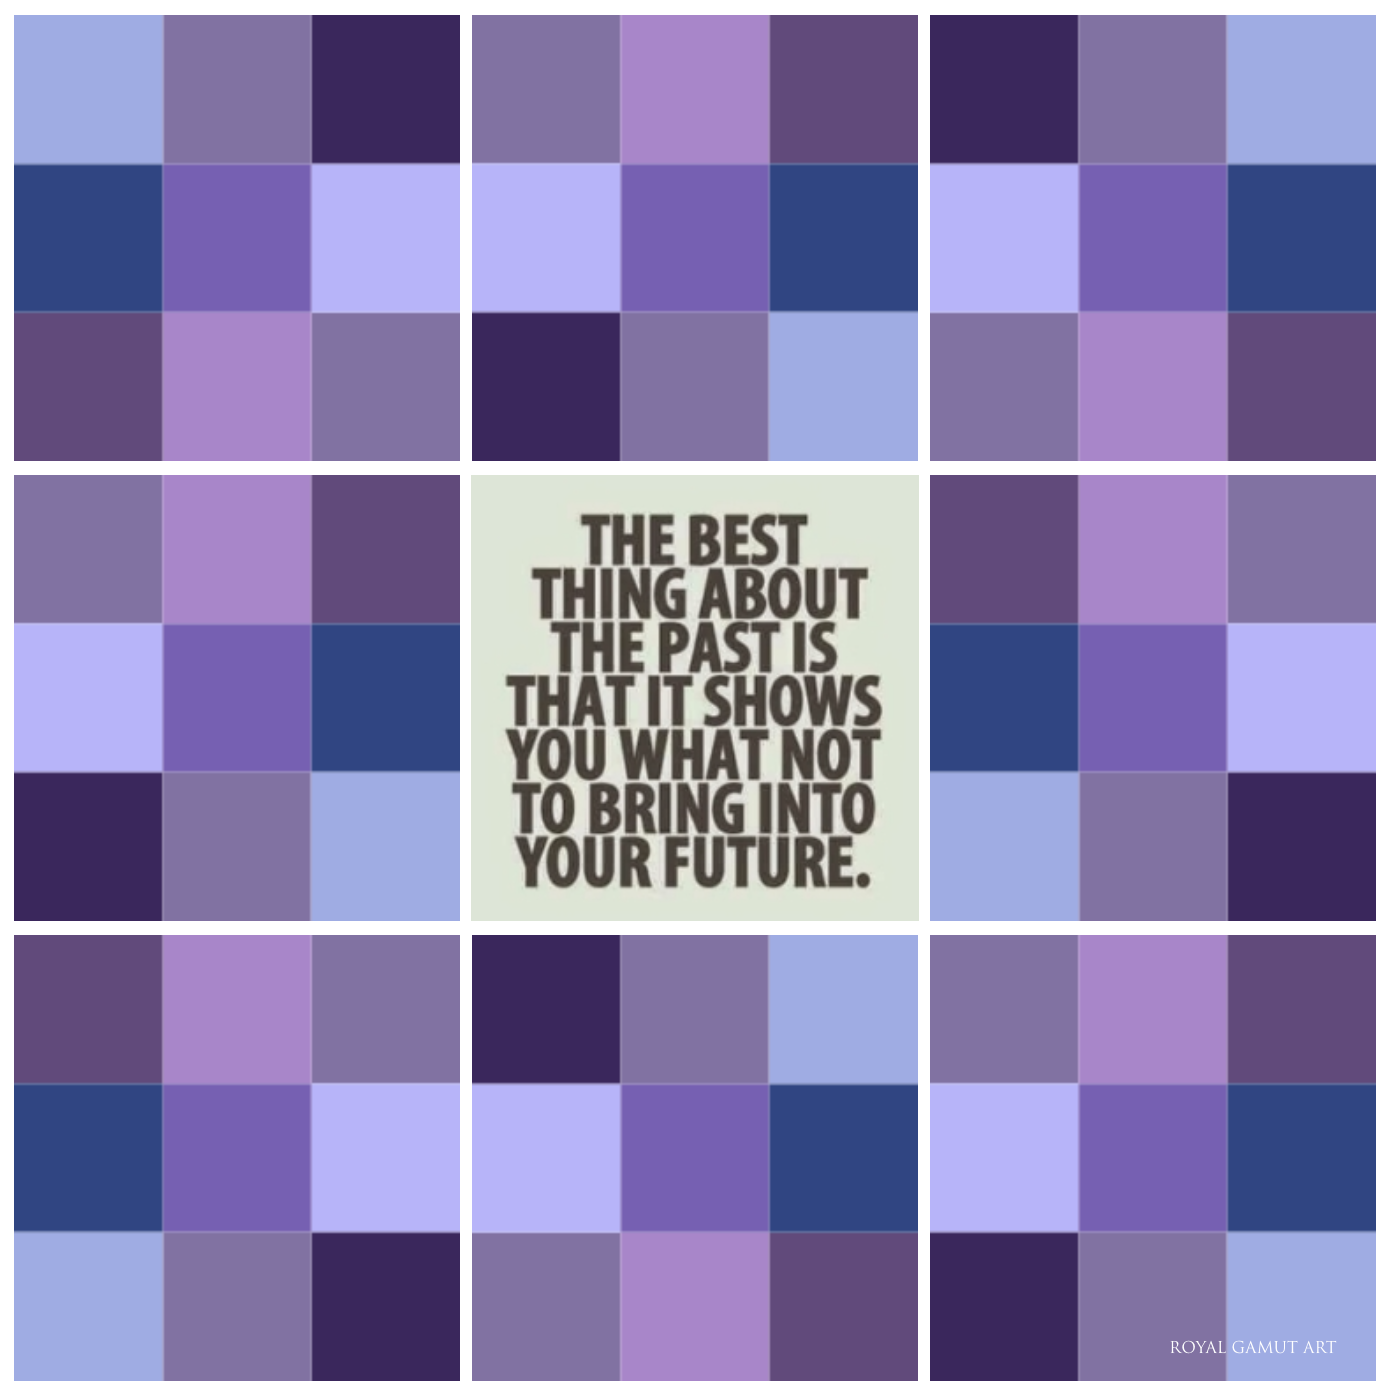 The best thing about the past is that it shows you what not to bring into your future. Royal Gamut Art